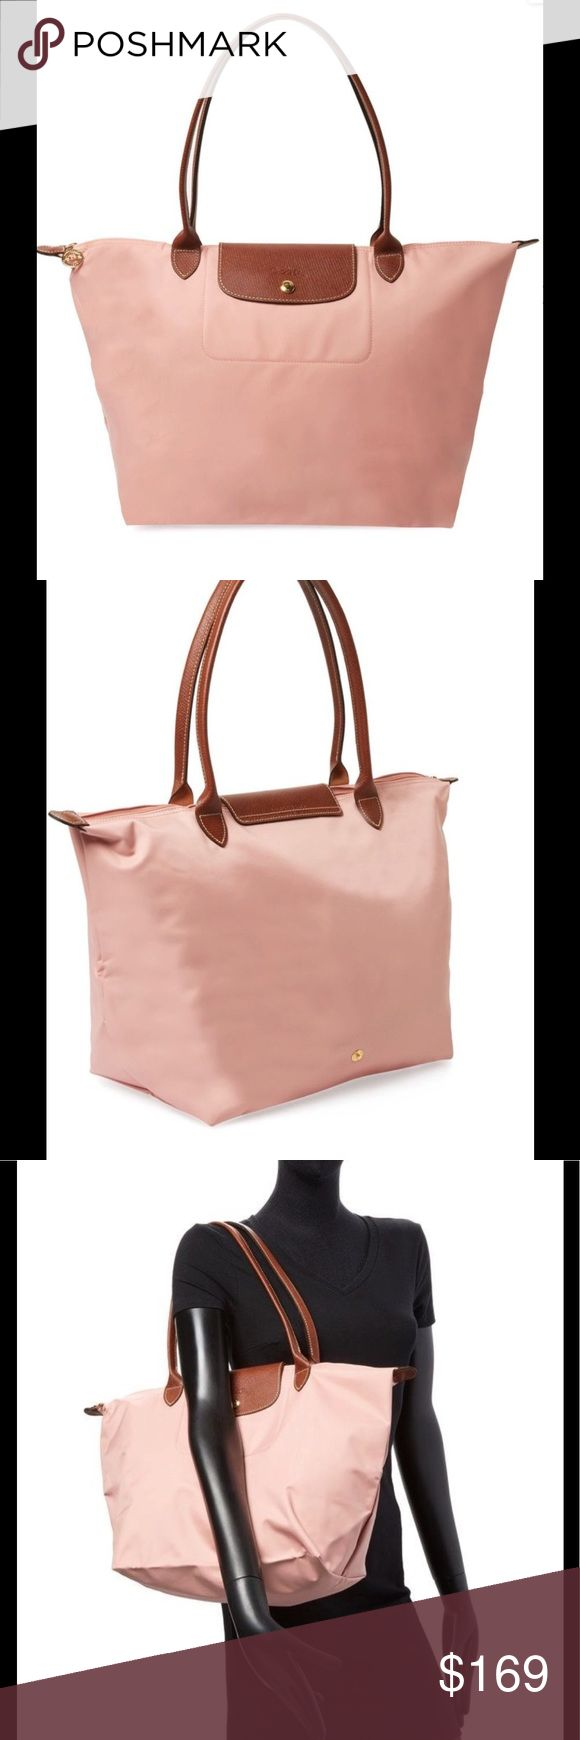 Authentic Longchamp Pinky Large Tote bag brand new with tags - Rare light pink color sold out everywhere- Price is firm! Longchamp Bags Shoulder Bags